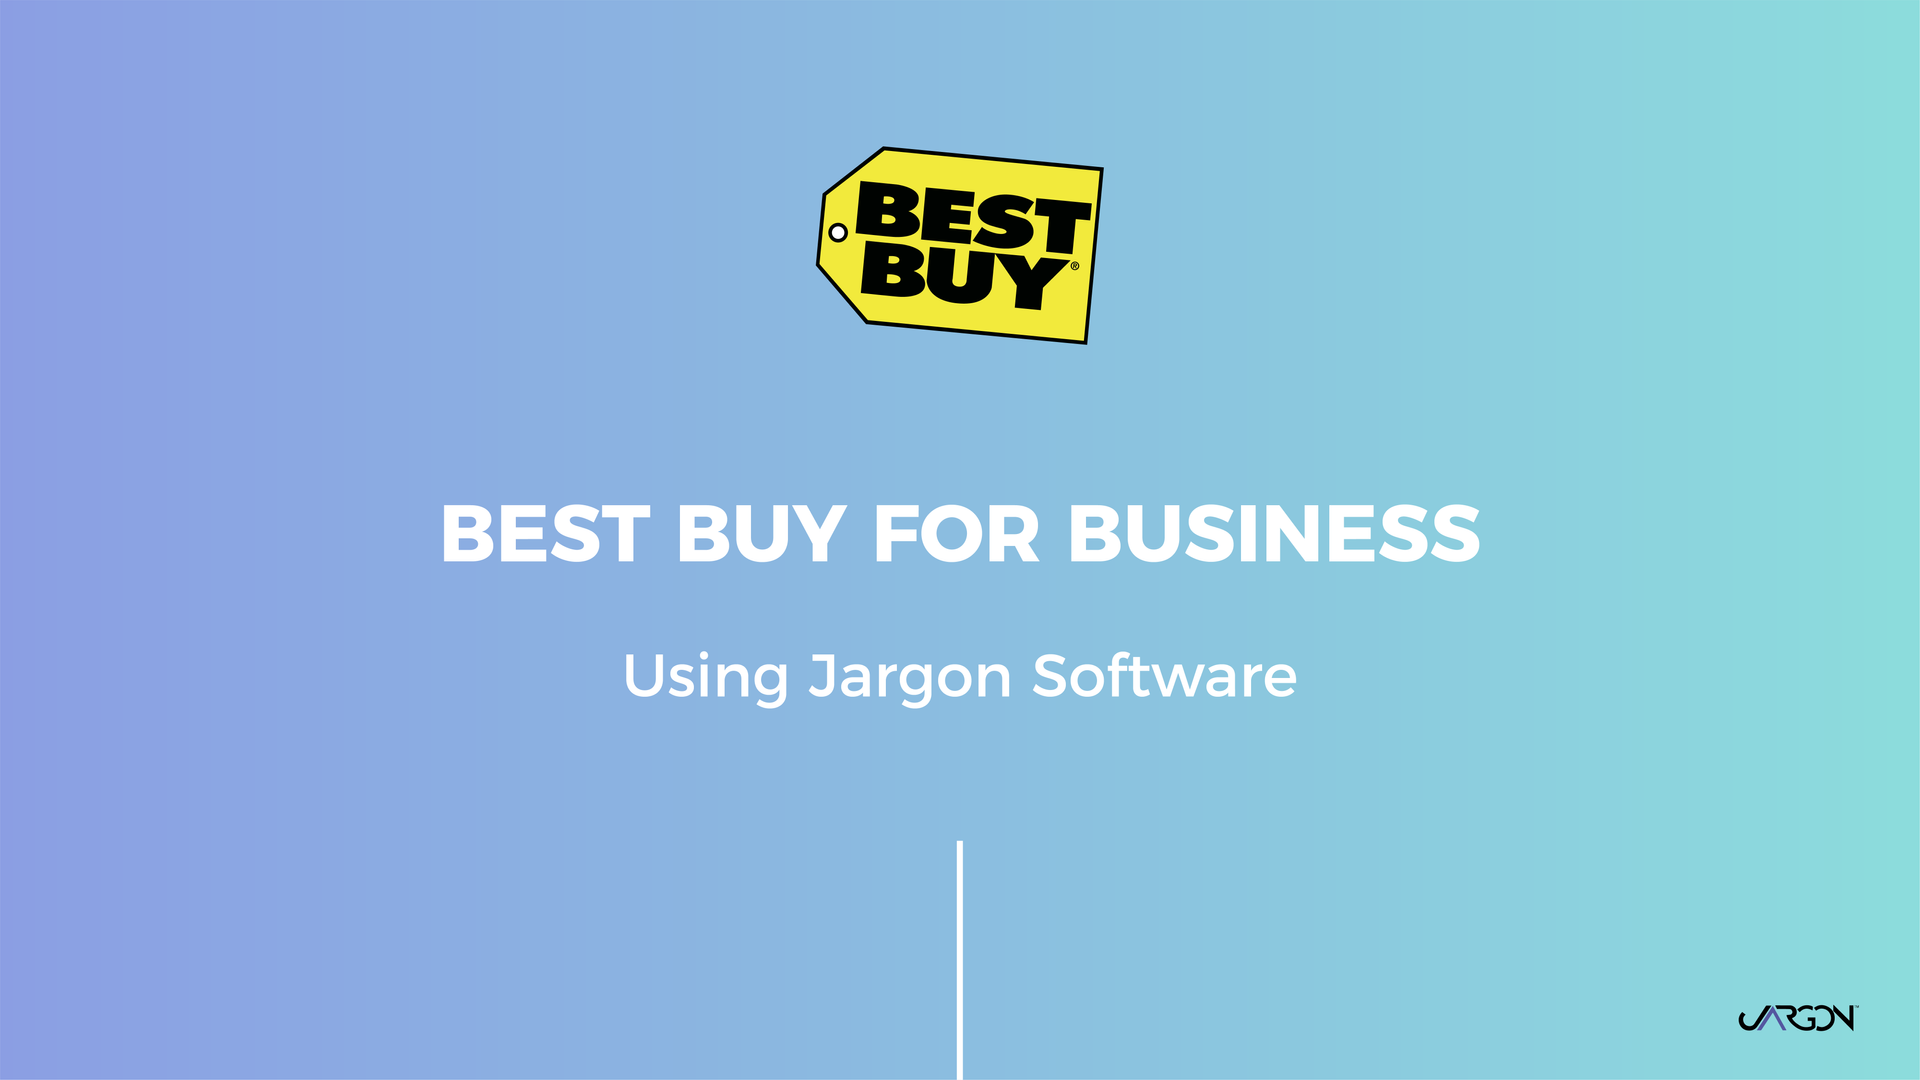 Best Buy for Business